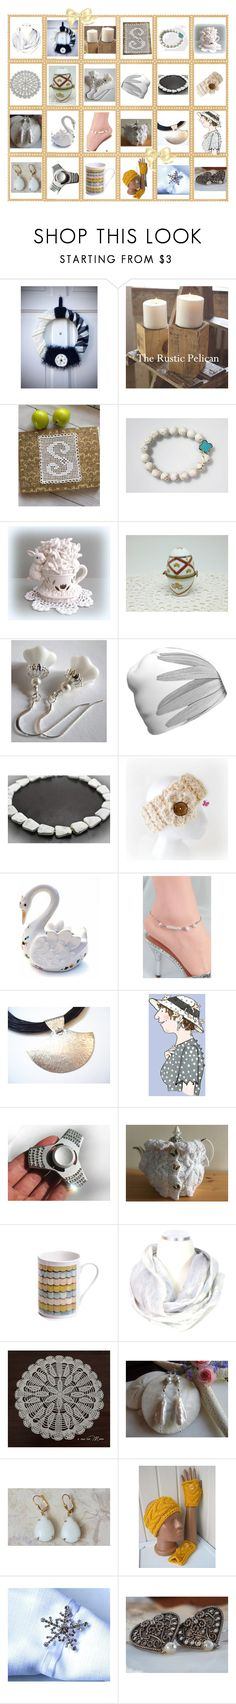 """""""Etsy Artisans on Polyvore"""" by cozeequilts ❤ liked on Polyvore"""